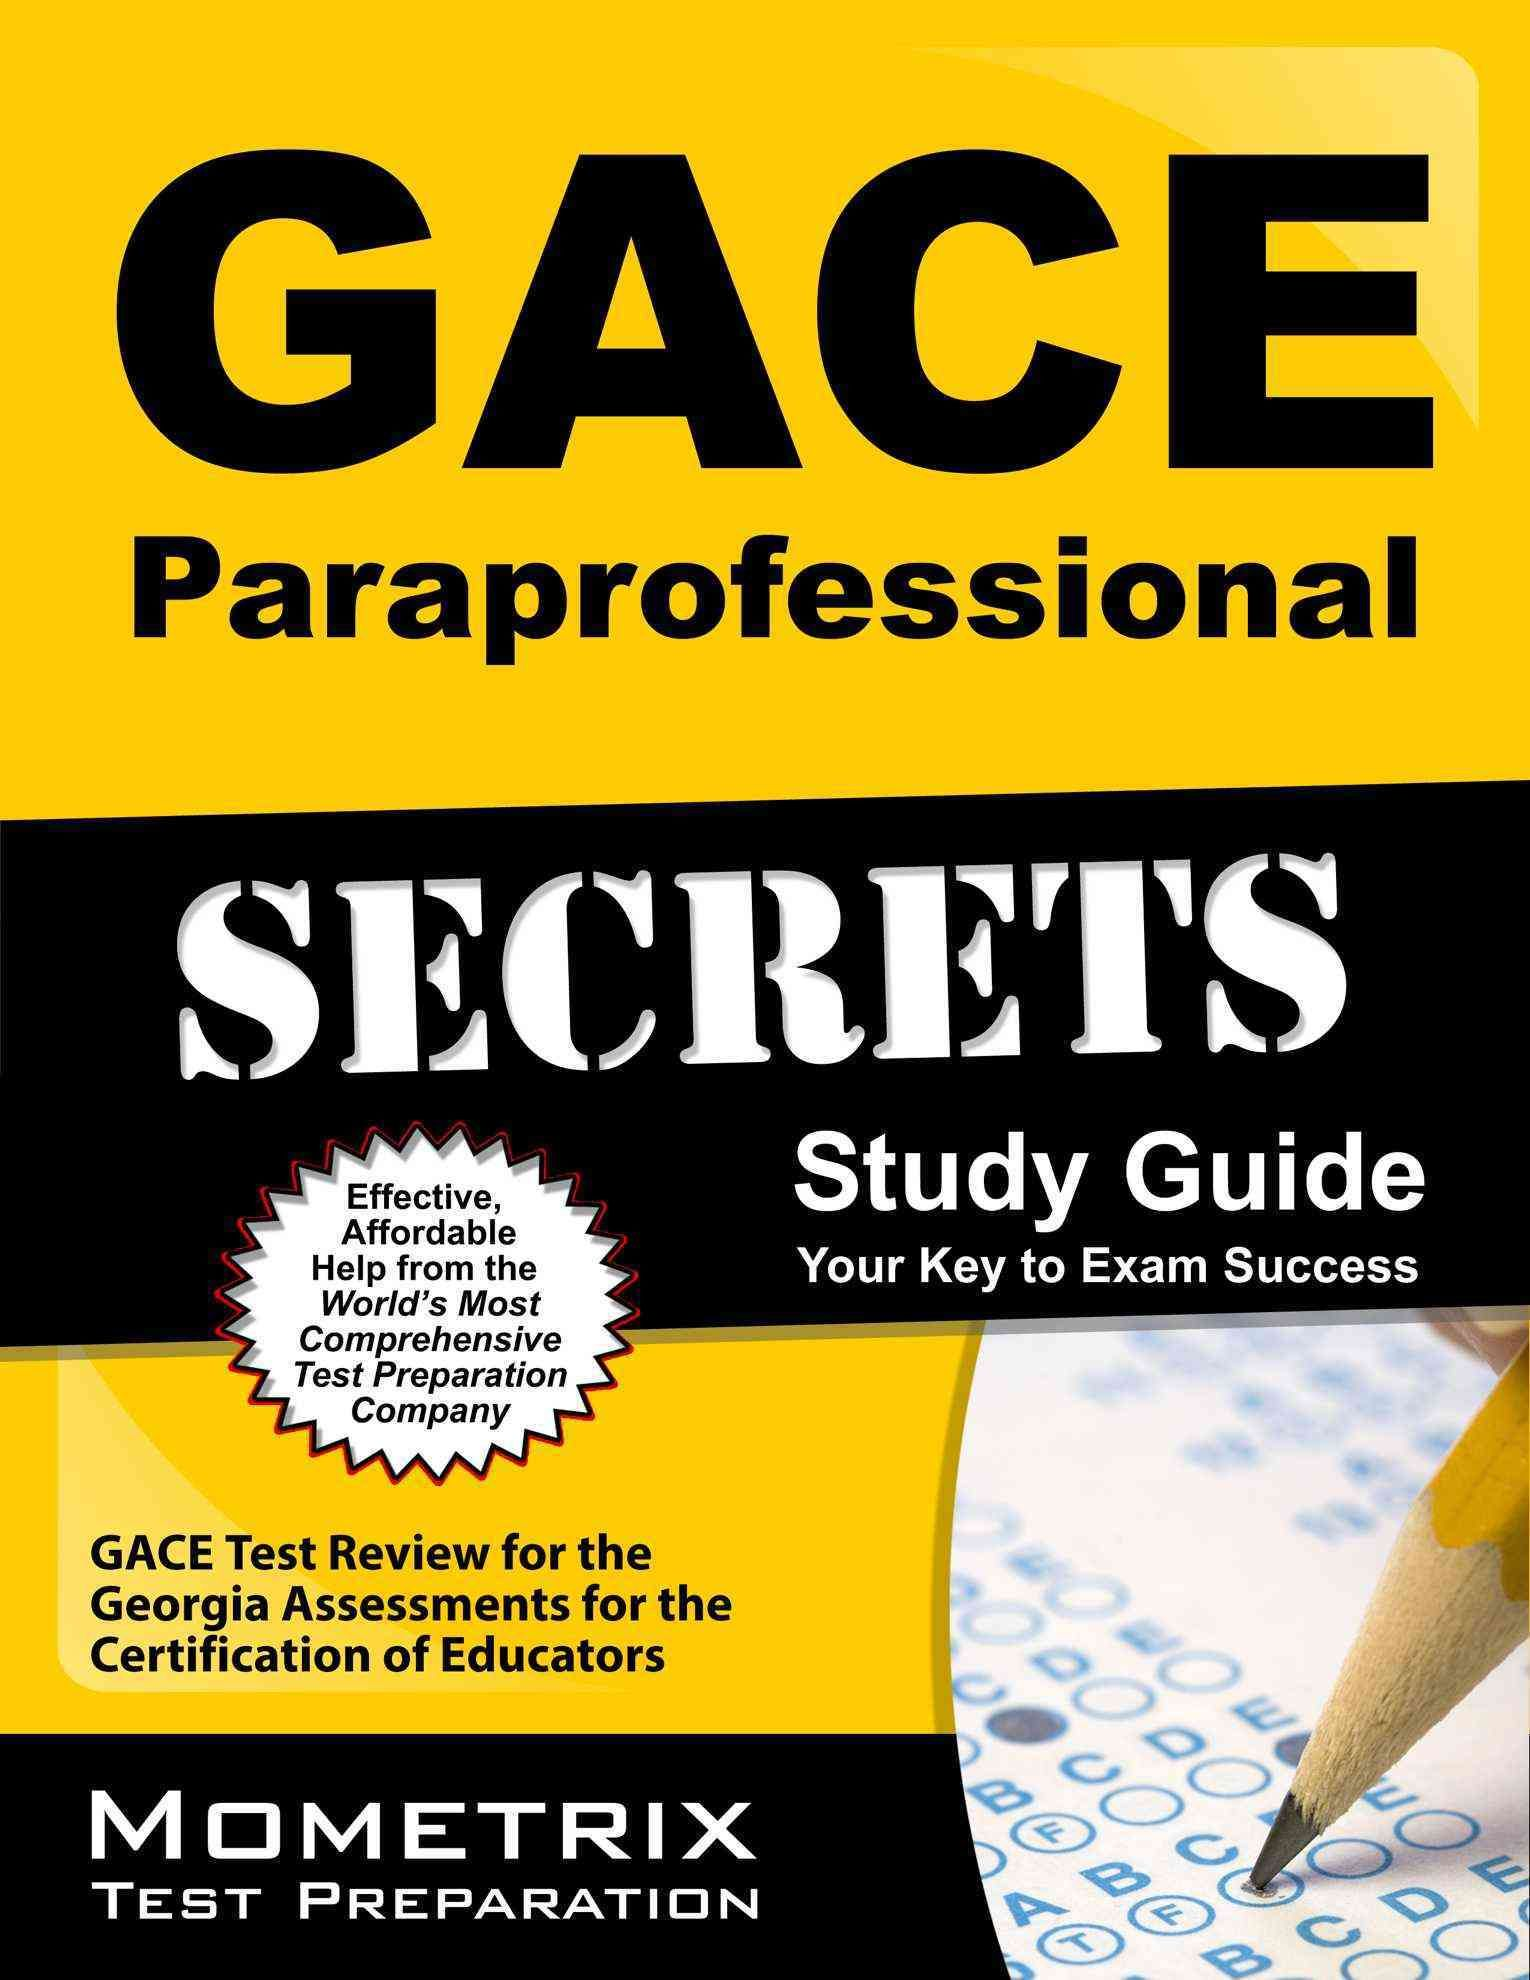 Lovely photos of paraprofessional certification business cards gace paraprofessional secrets gace test review for the georgia xflitez Image collections